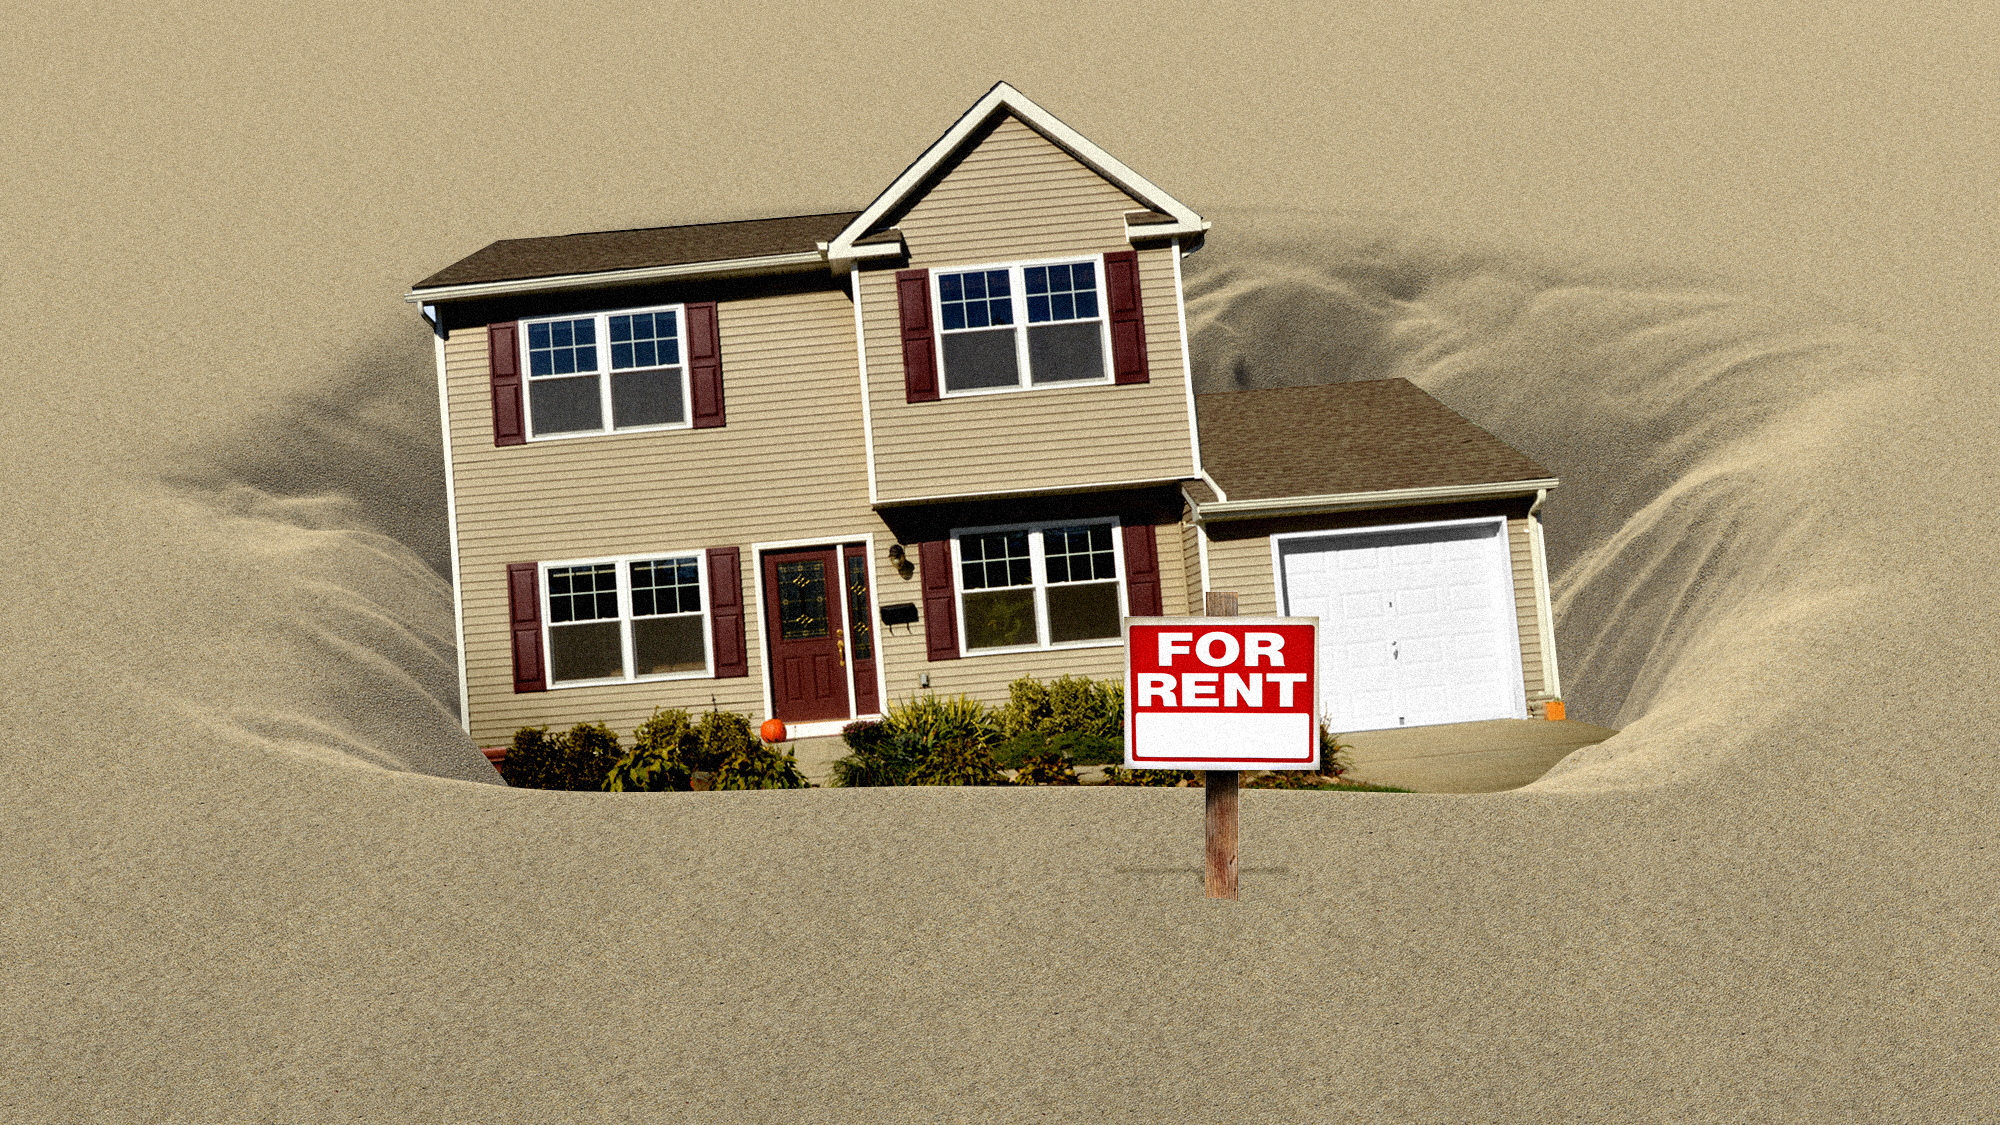 How Wall Street Bought Up America's Homes - The Atlantic